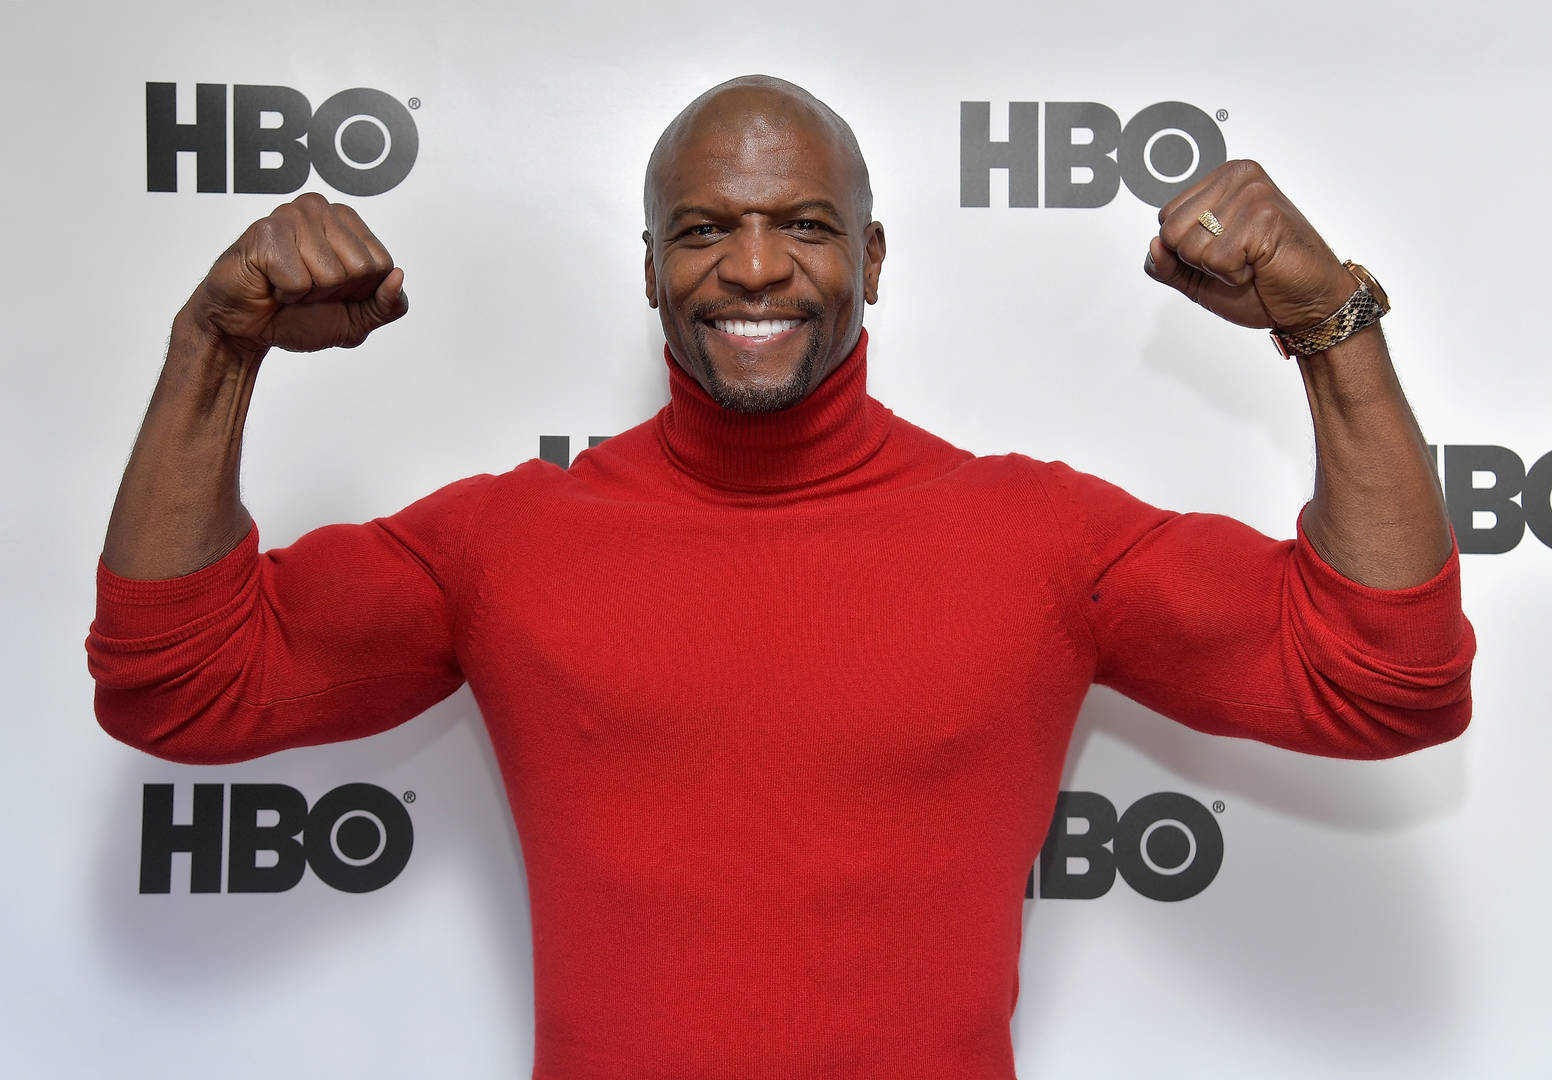 Terry Crews Apologizes To Black Men After Claiming They Didn't Support His Assault Claims